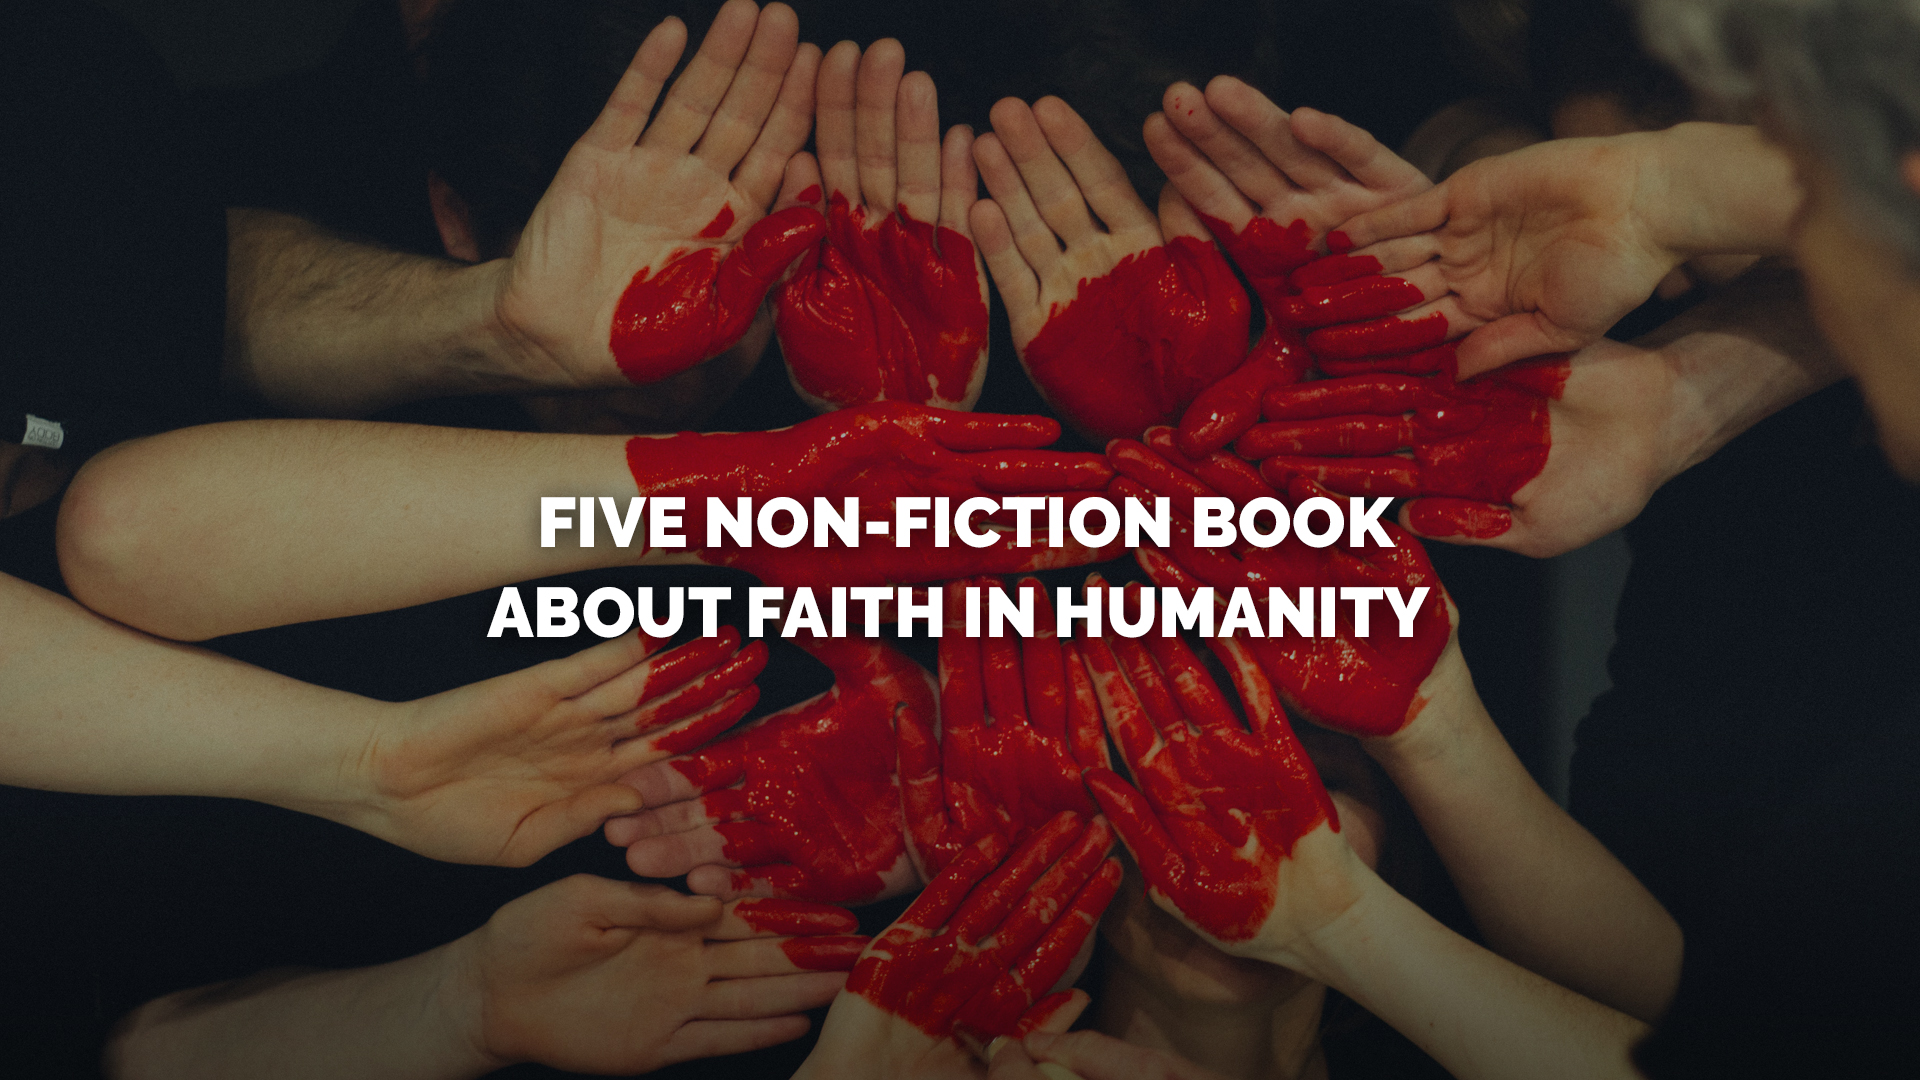 Five NonFiction Books About Faith in Humanity